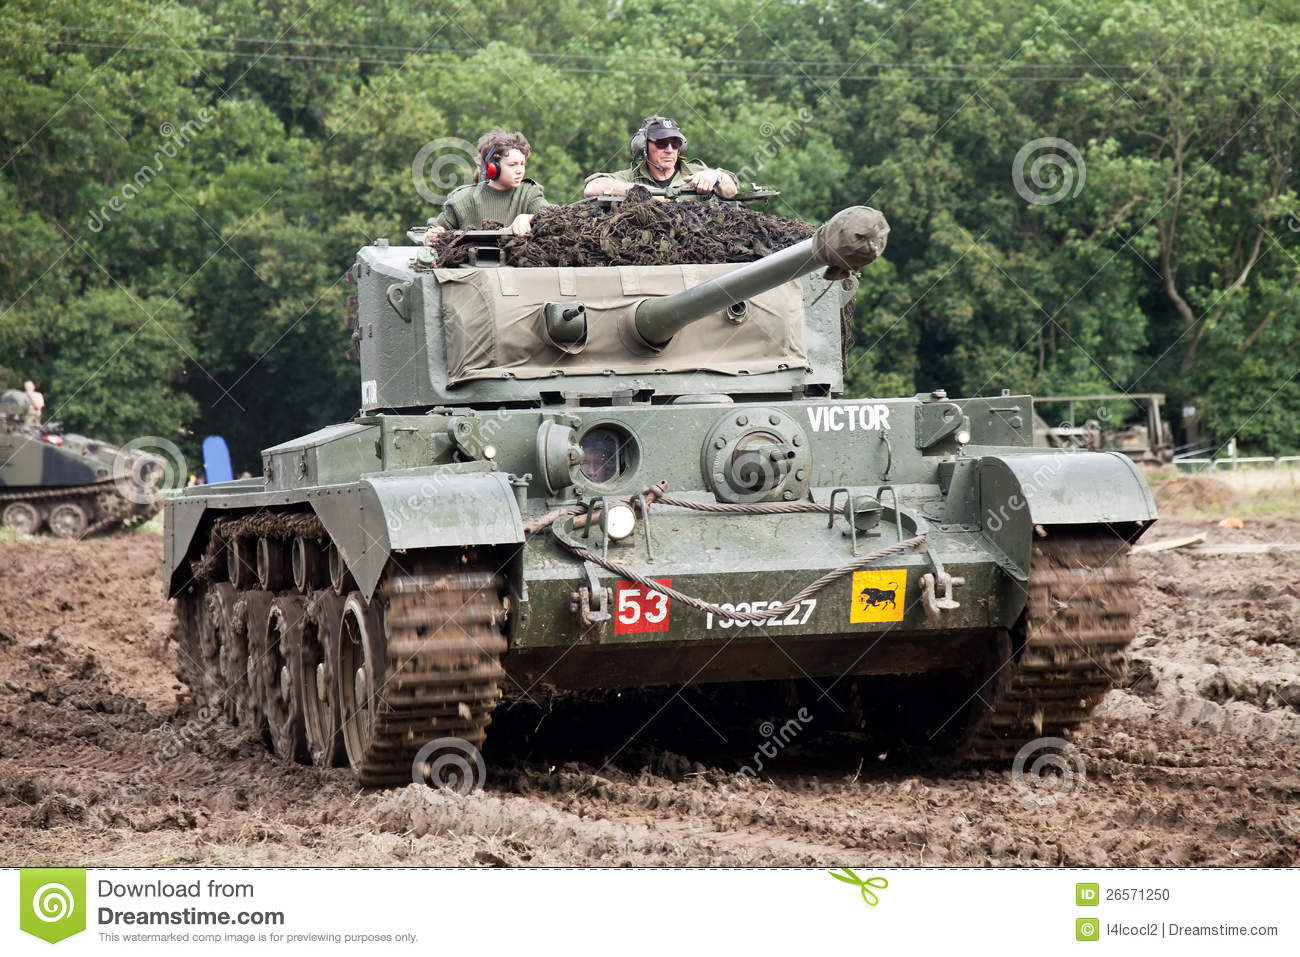 BELTRING, UK - JULY 19: A preserved British Army WW2 Comet tank gives ...